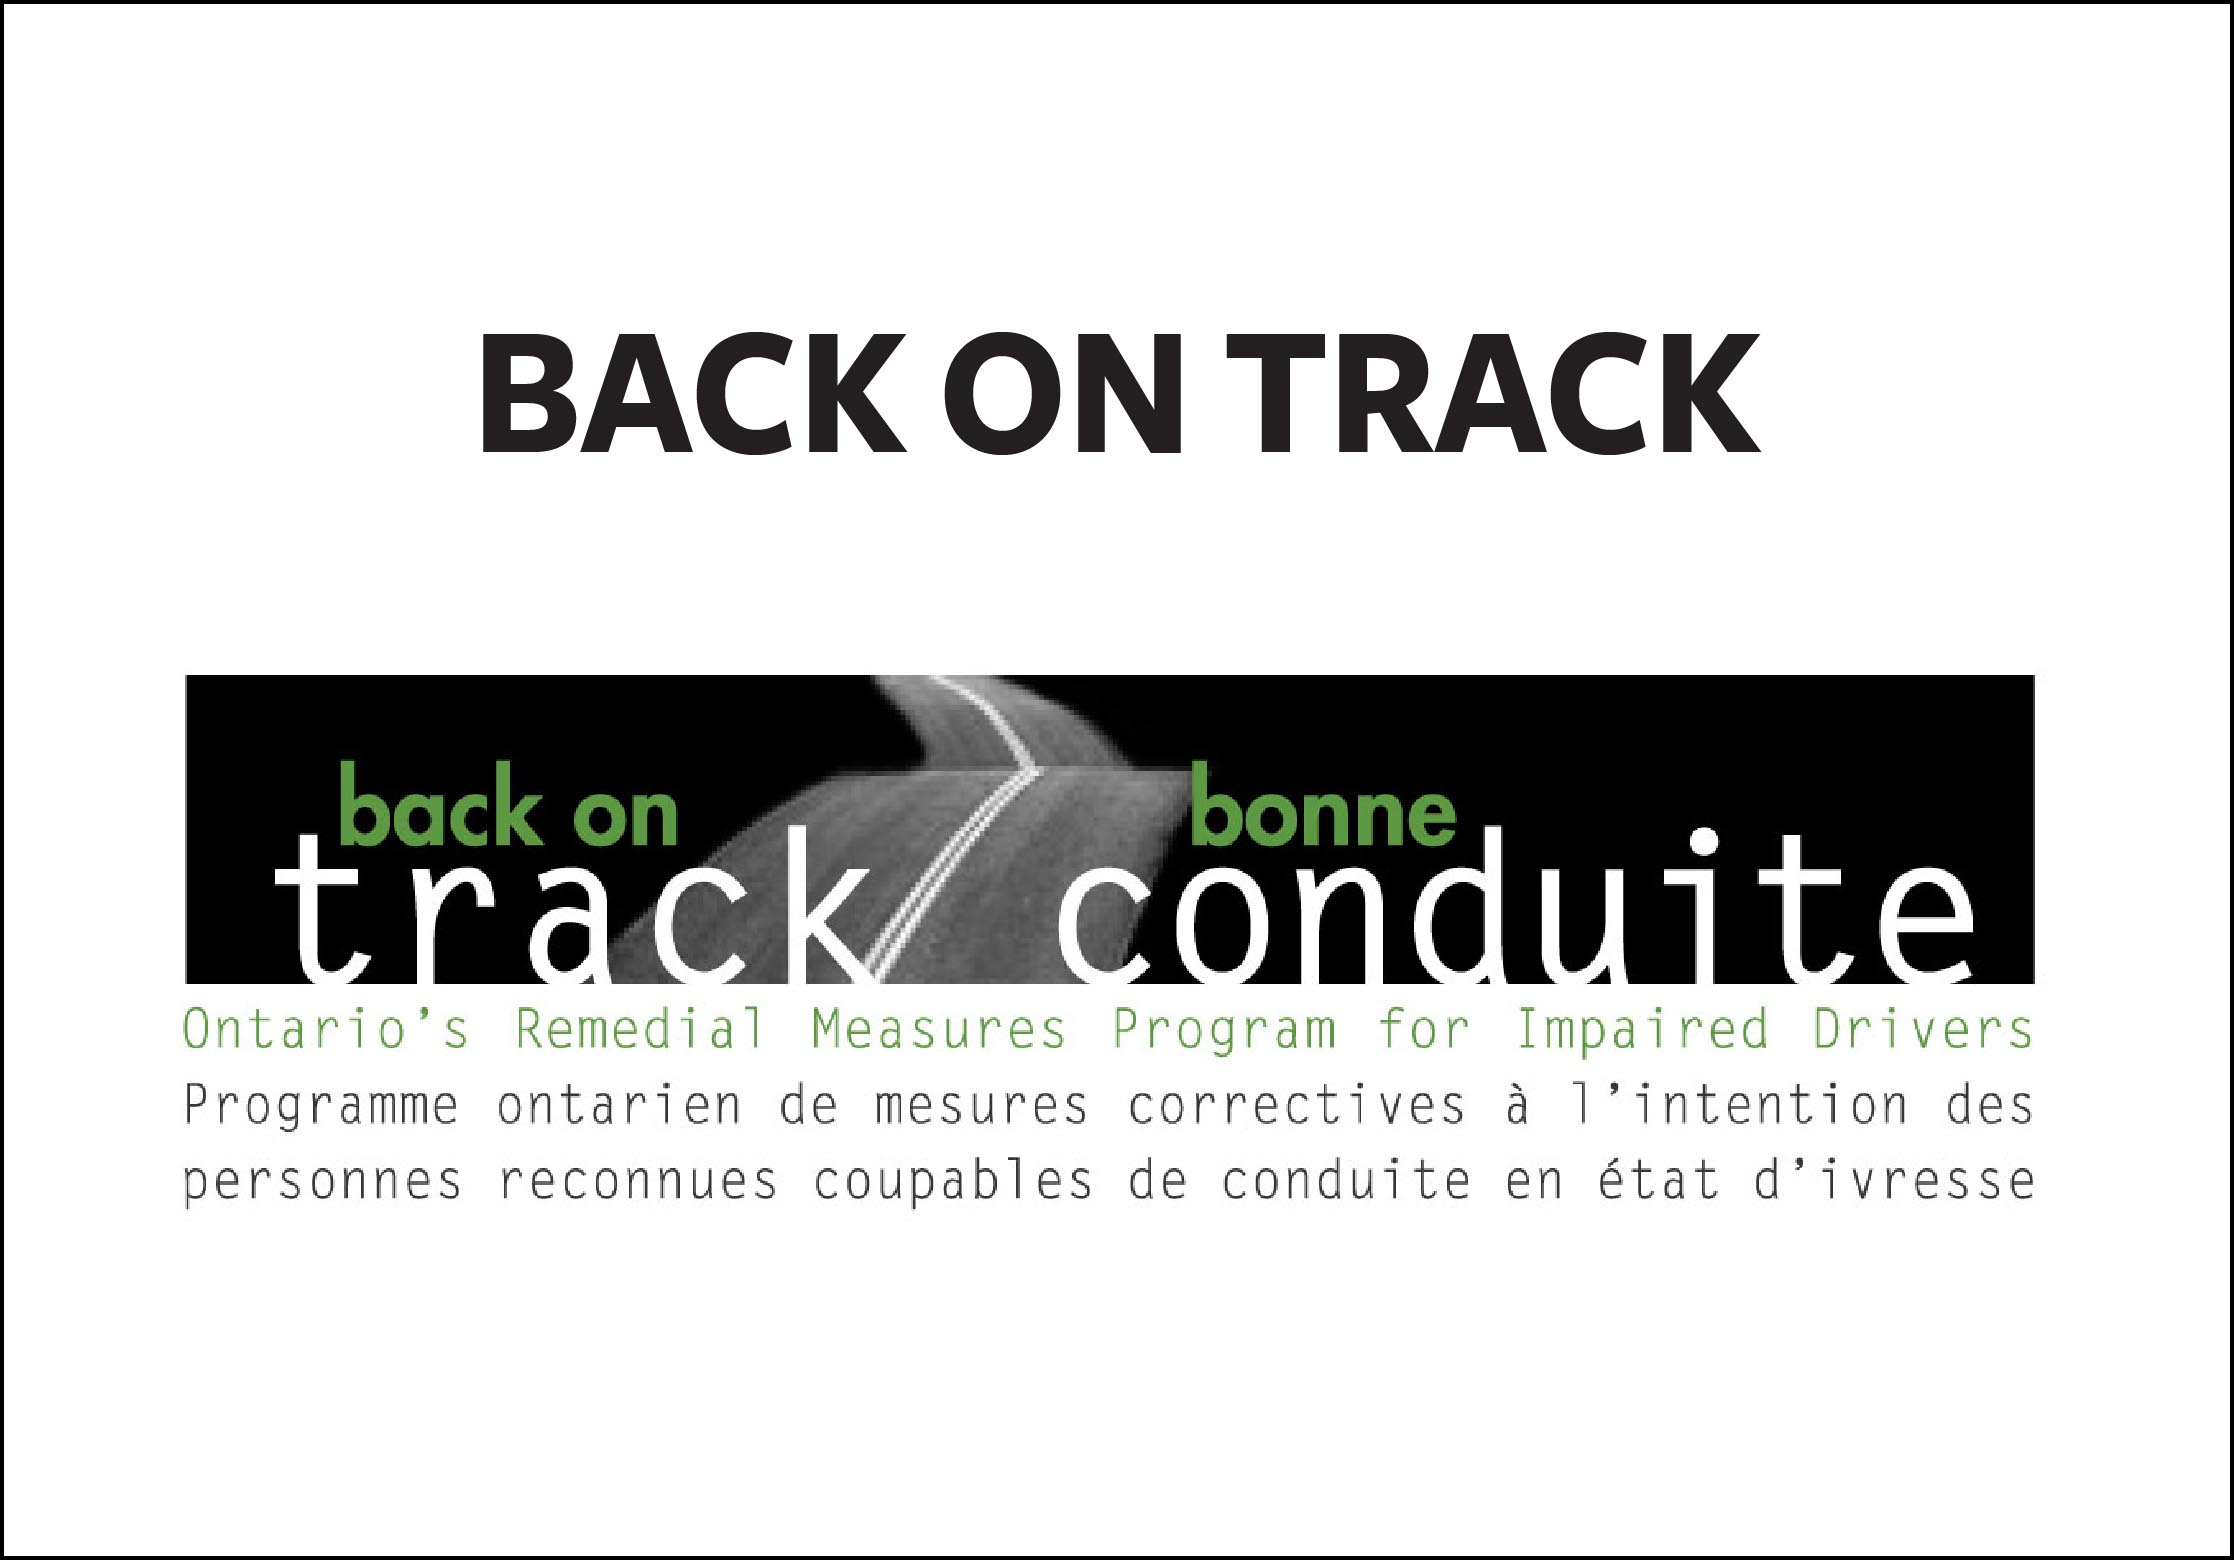 Link to Back on Track Program for Impaired Drivers page